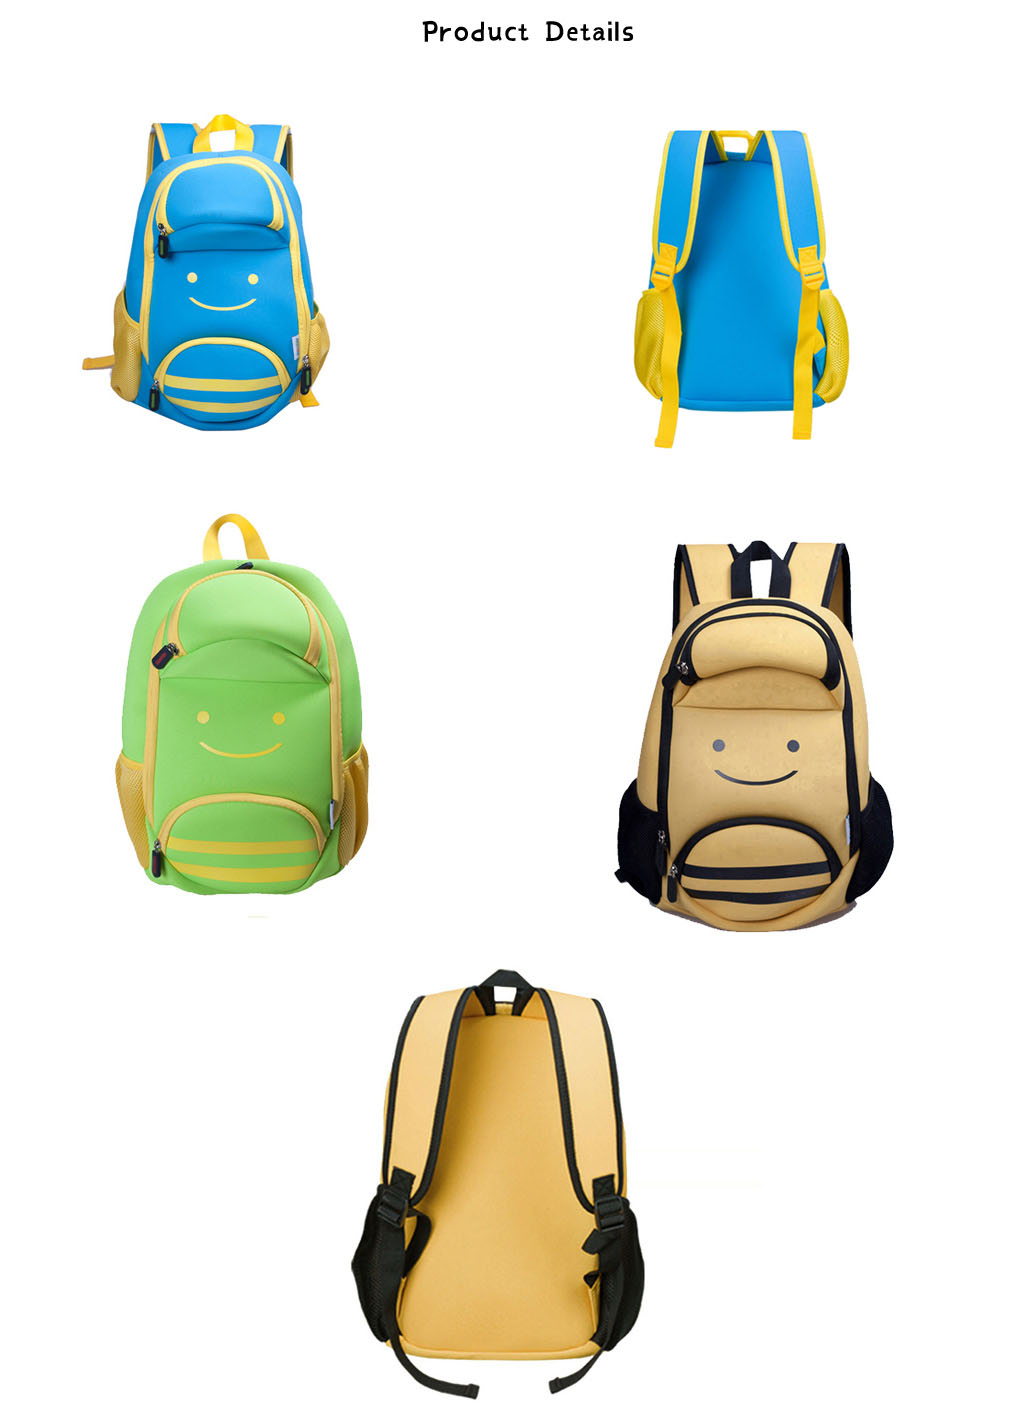 Nohoo Children Products-Ultra Lightweight Kids Backpack Animal Bee Preschool Children Bag